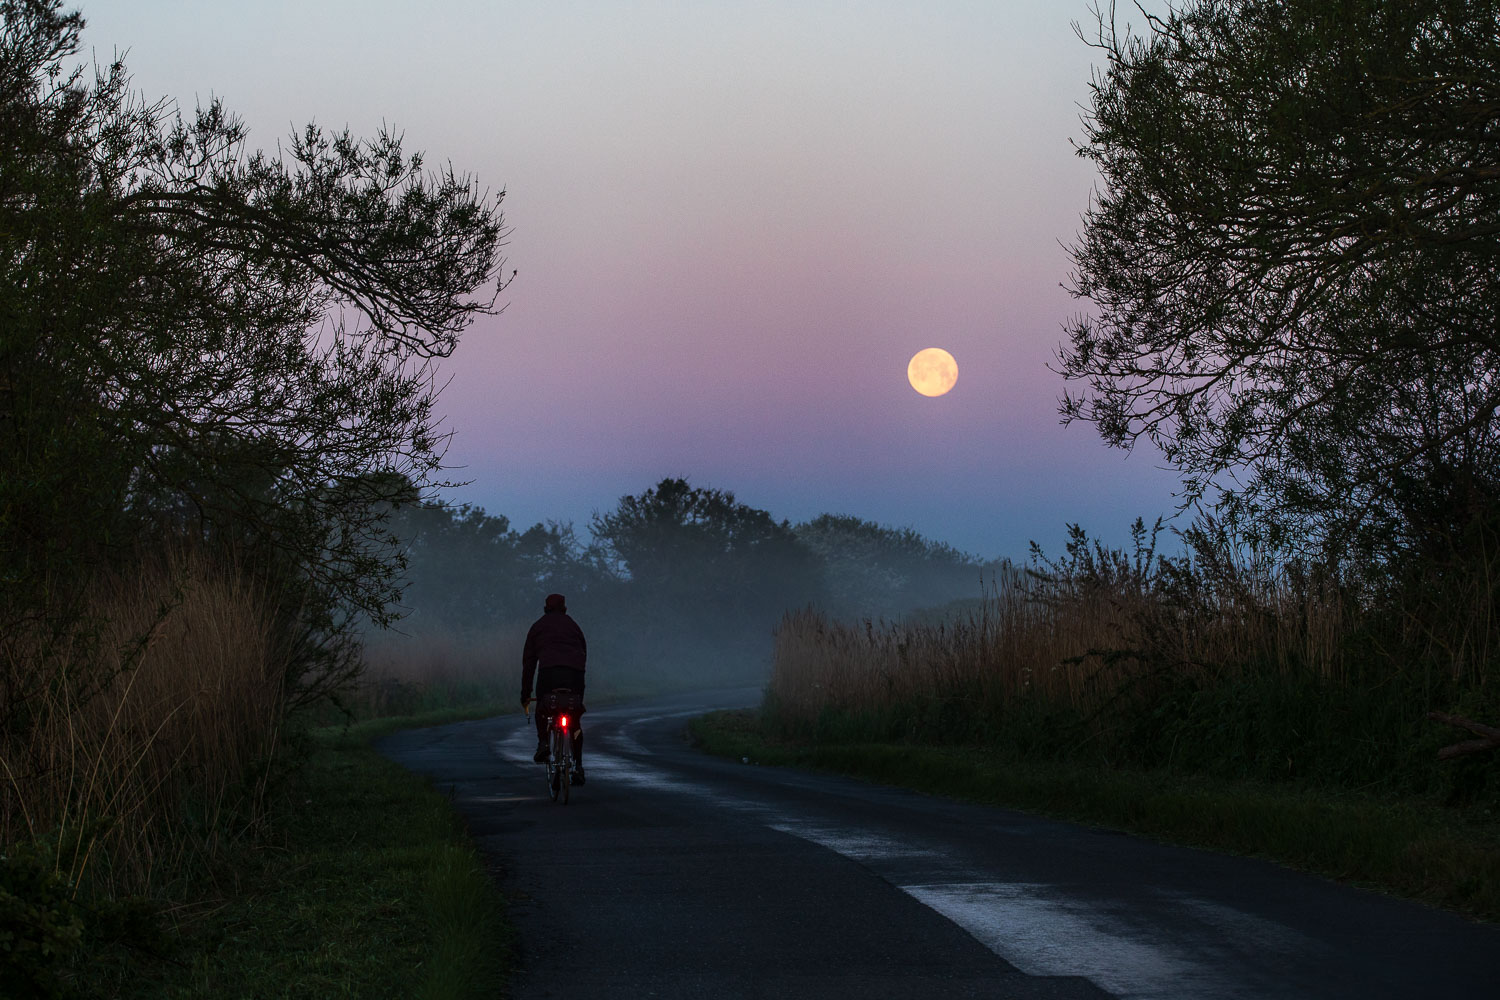 Cyclist on country lane pedalling towards a luminous full moon